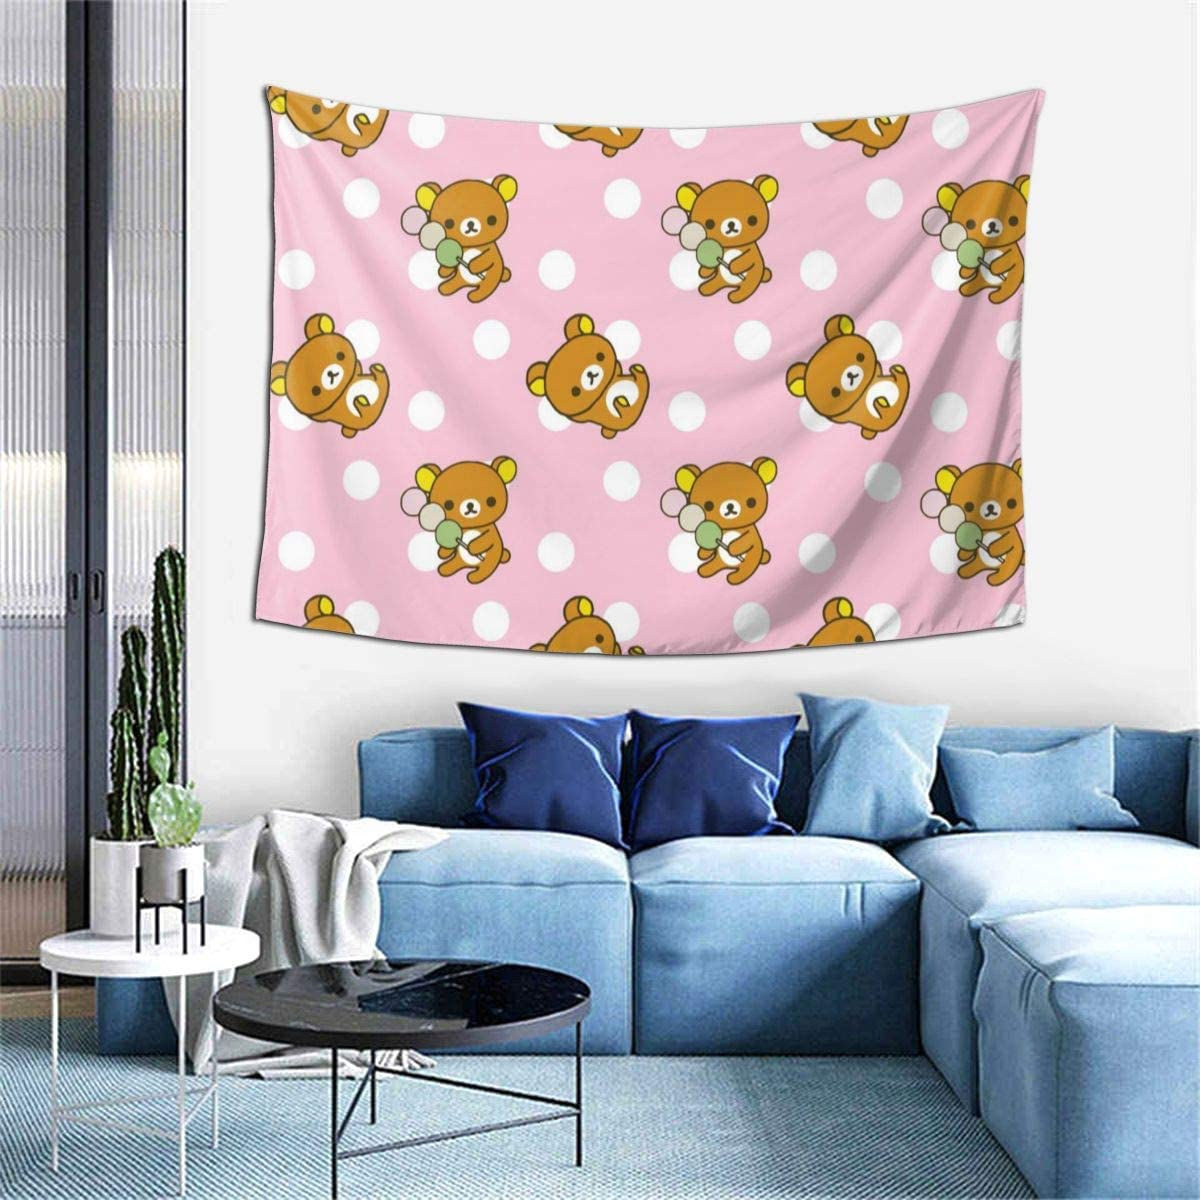 NewBHomeHome Rilakkuma Cute Pattern Tapestry Wall Hanging Hippie Blanket Tapestries Home Decorations for Bedroom Living Room Dorm Decor